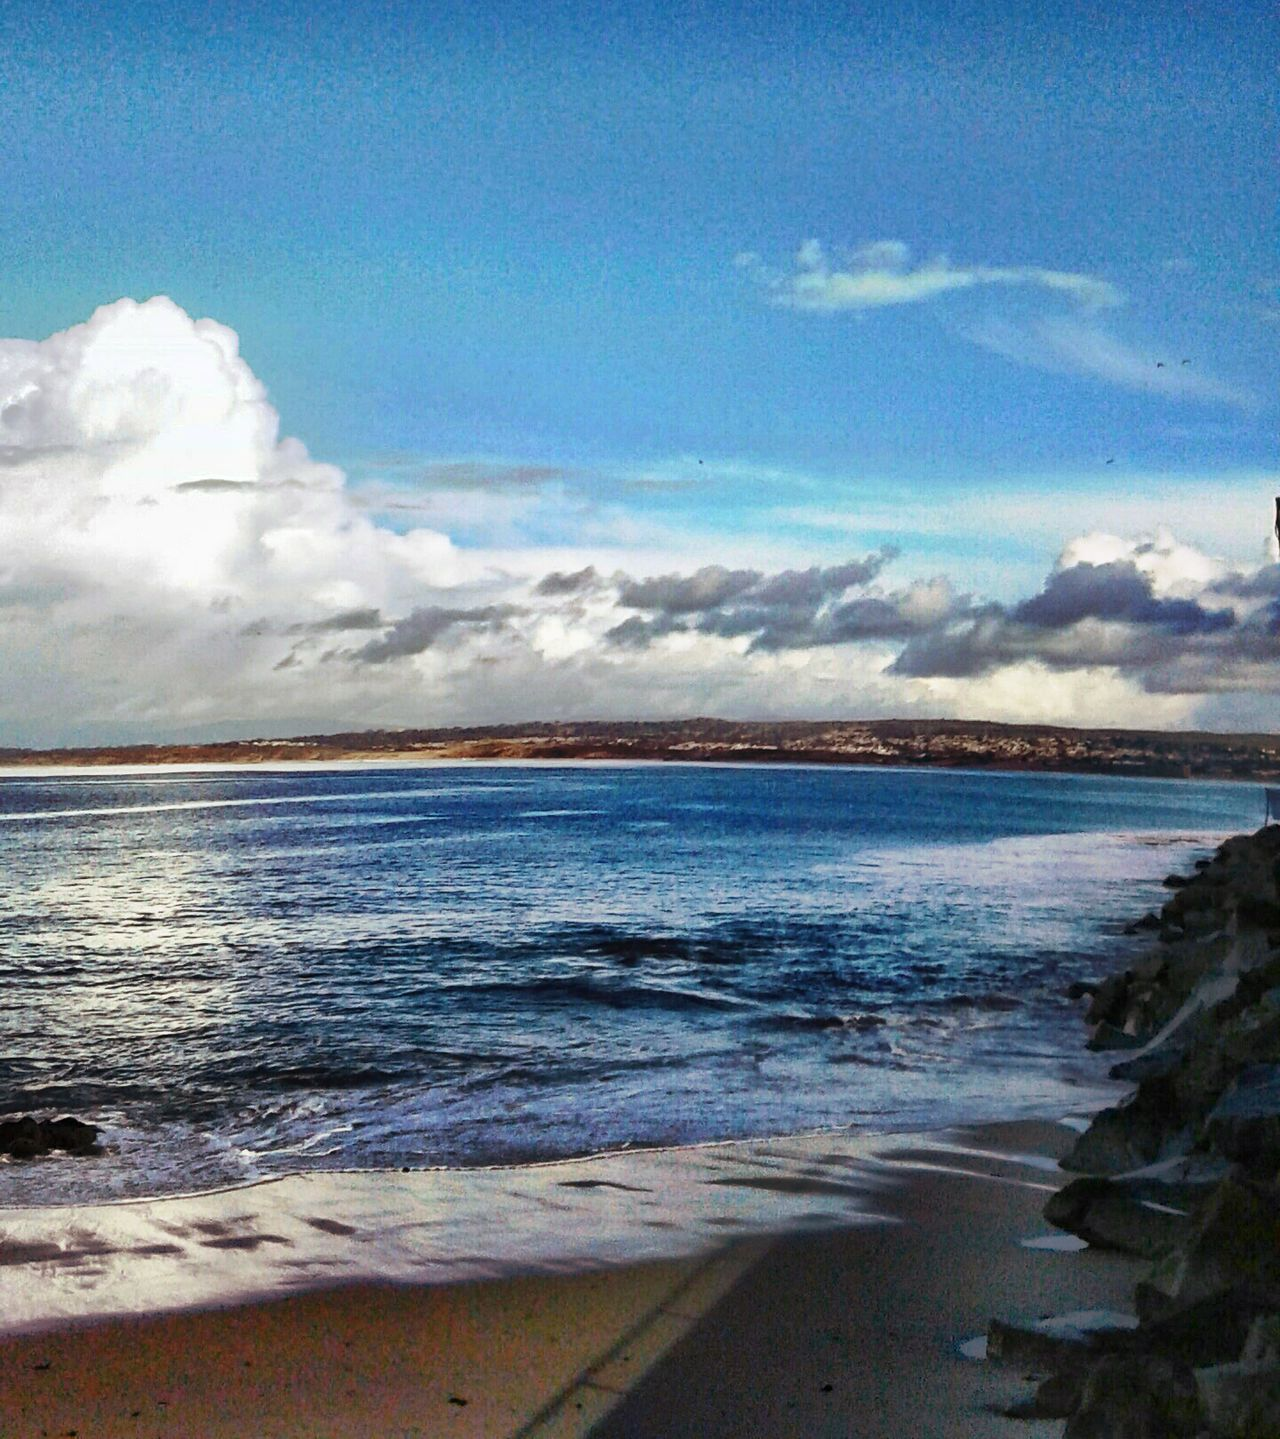 Sea Beach Cloud - Sky Horizon Over Water Beauty In Nature Sky Blue Scenics Sand Nature Tranquil Scene Water No People Outdoors Wave Tranquility Day Landscape